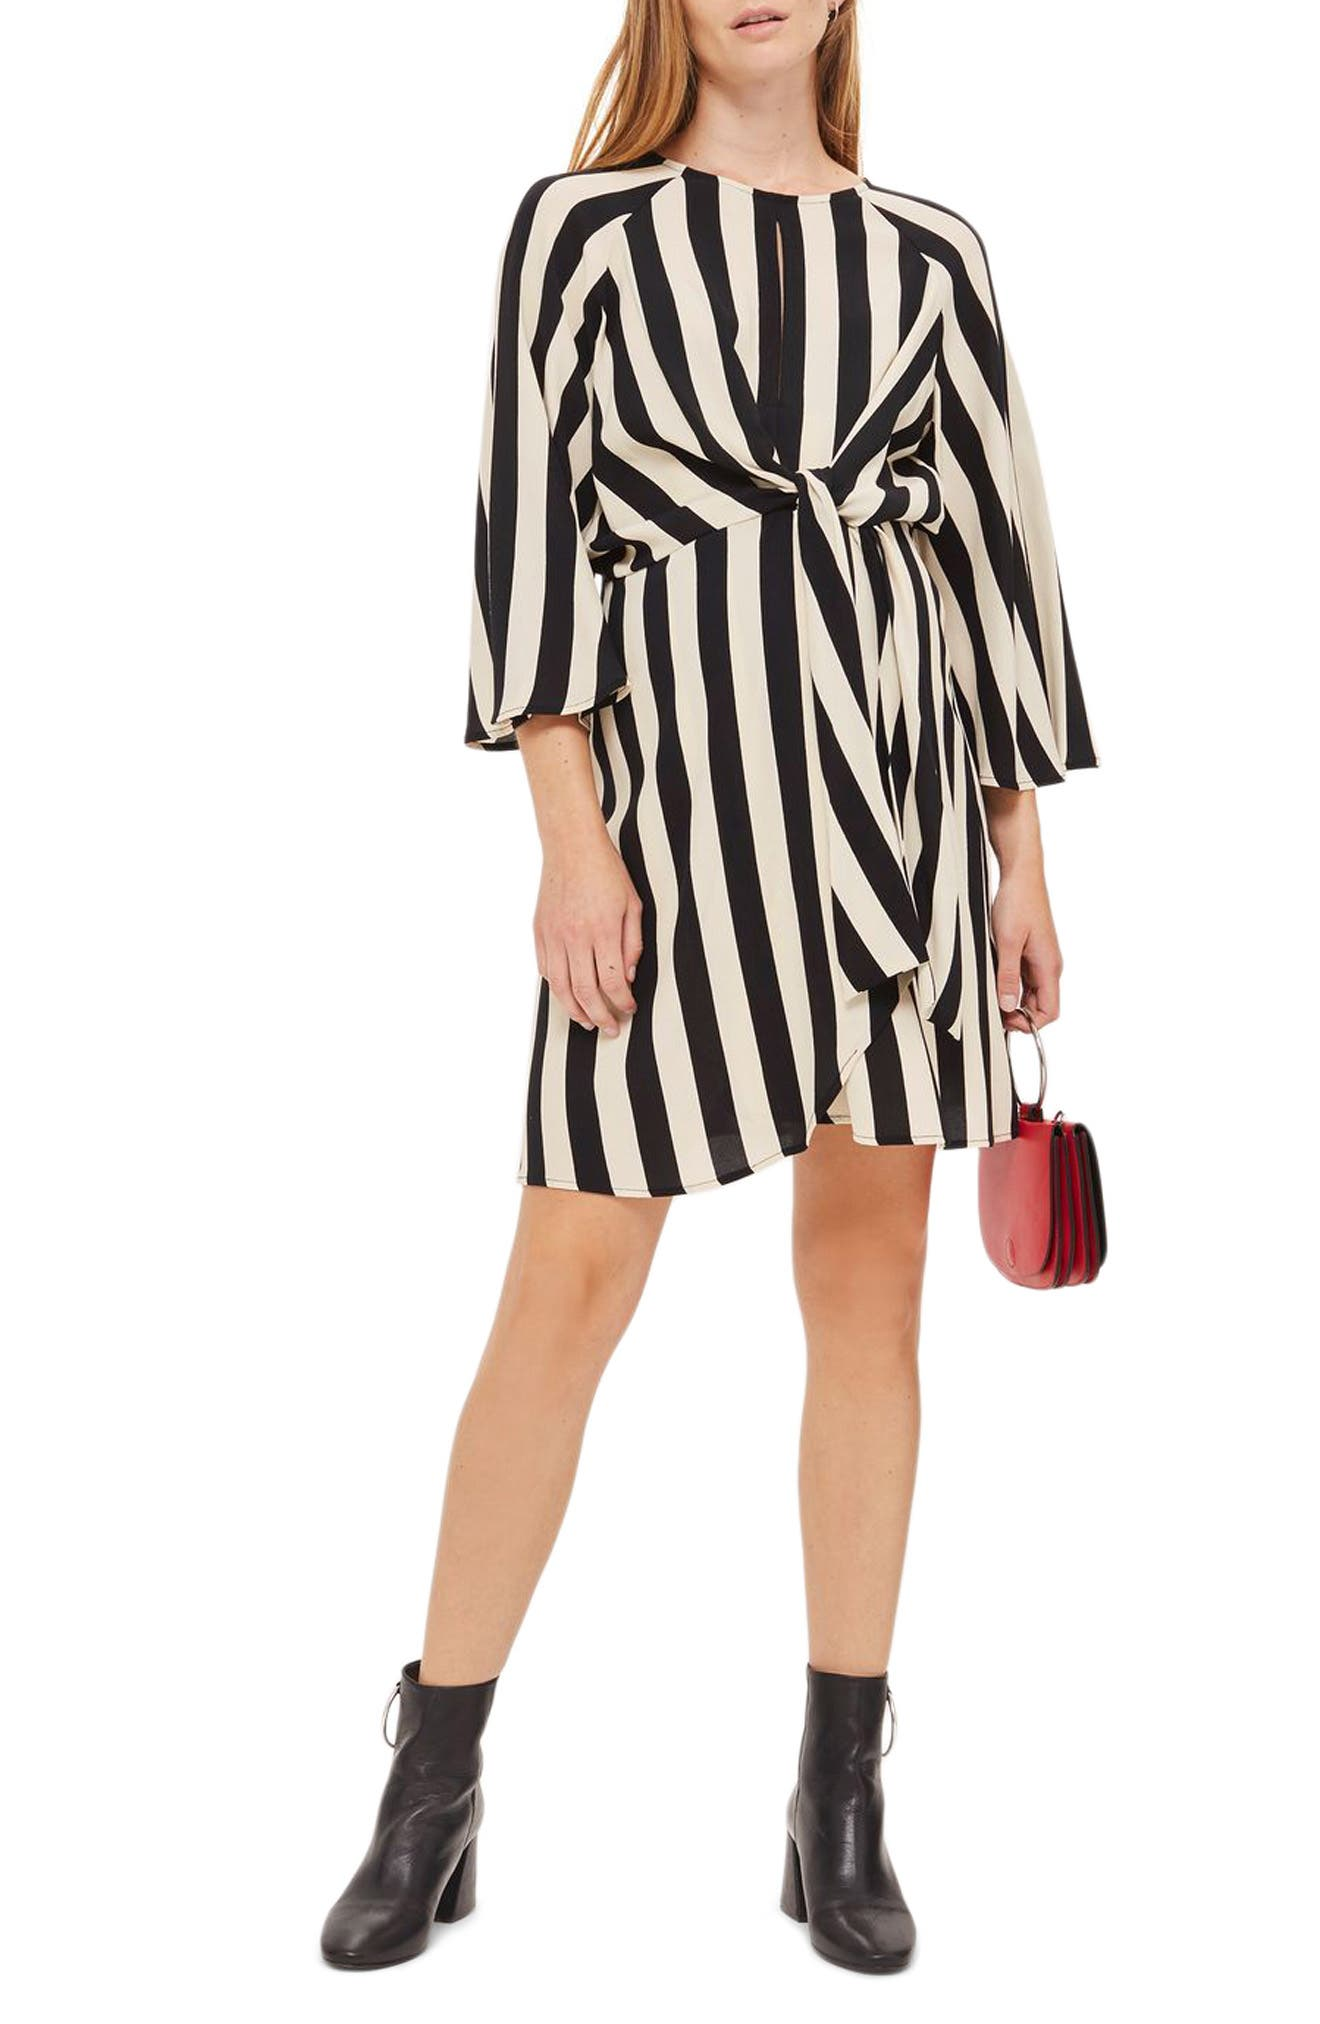 Topshop womens maternity wear nordstrom ombrellifo Images